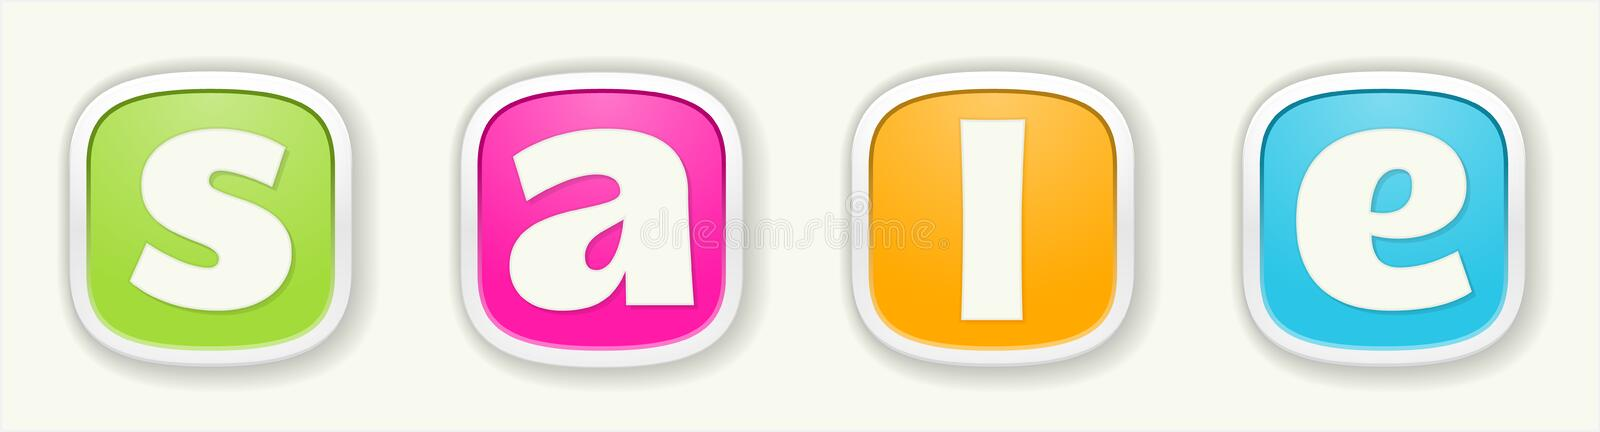 Download The sale sign stock vector. Image of discount, commerce - 36362082